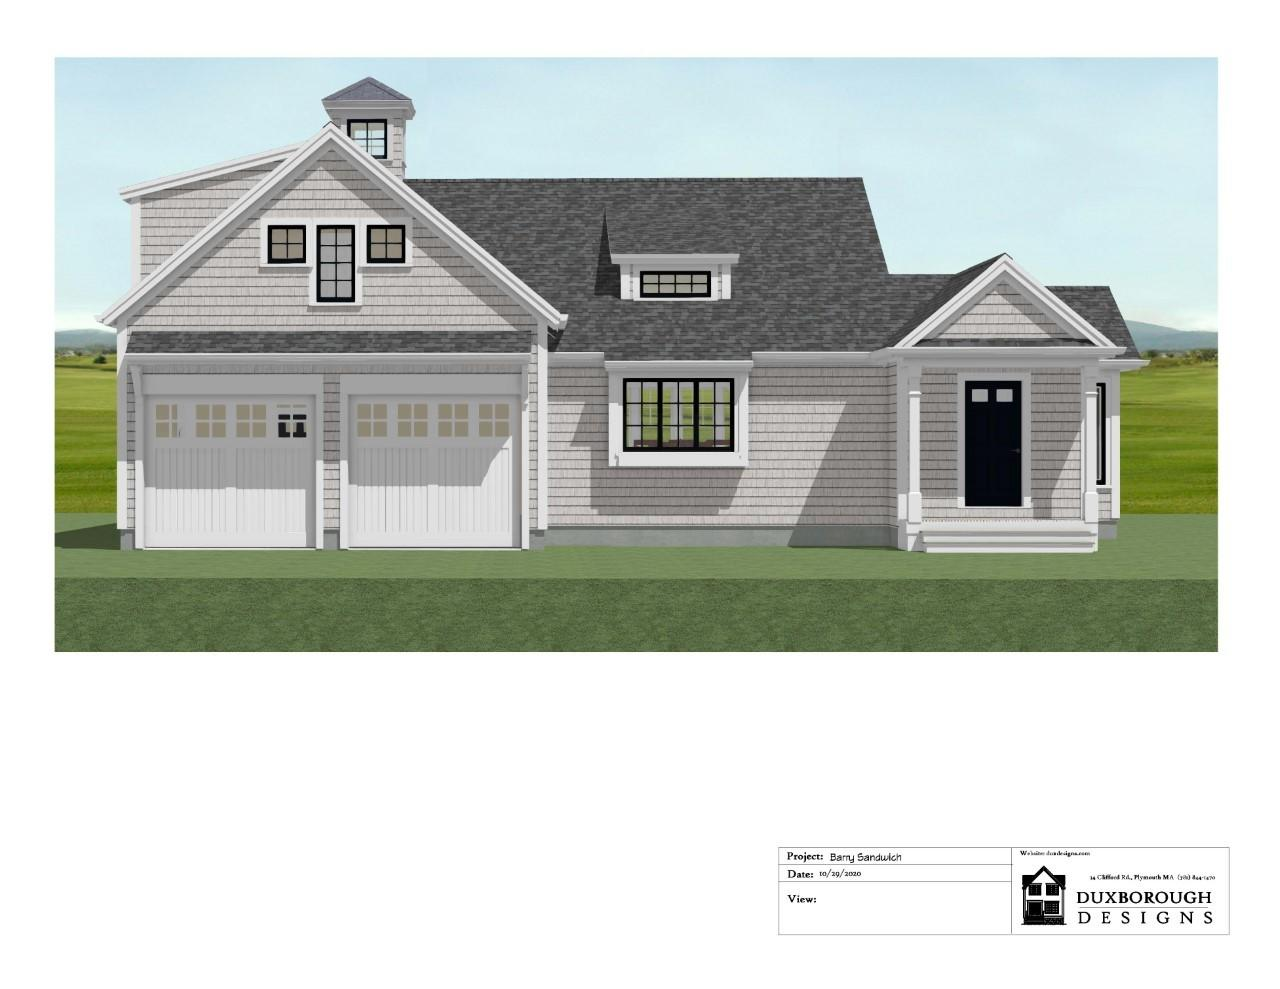 To Be Built in Sandwich's newest cul de sac, Lookout Ridge. This beautiful Cape Cod Webster Model home has the perfect coastal charm and open concept floor plan. Hardwood floors will gleam throughout the first floor. The open concept kitchen will have white shaker cabinets, stone countertops and stainless steel appliances. One side offers the master suite, with walk in closet, private bath with double vanity and tile shower. Upstairs is an ideal guest quarters with 2 bedrooms and a full bathroom. 4 bedroom septic, central air, propane gas heat. The 3 season room is a great addition. Taking reservations on additional lots.